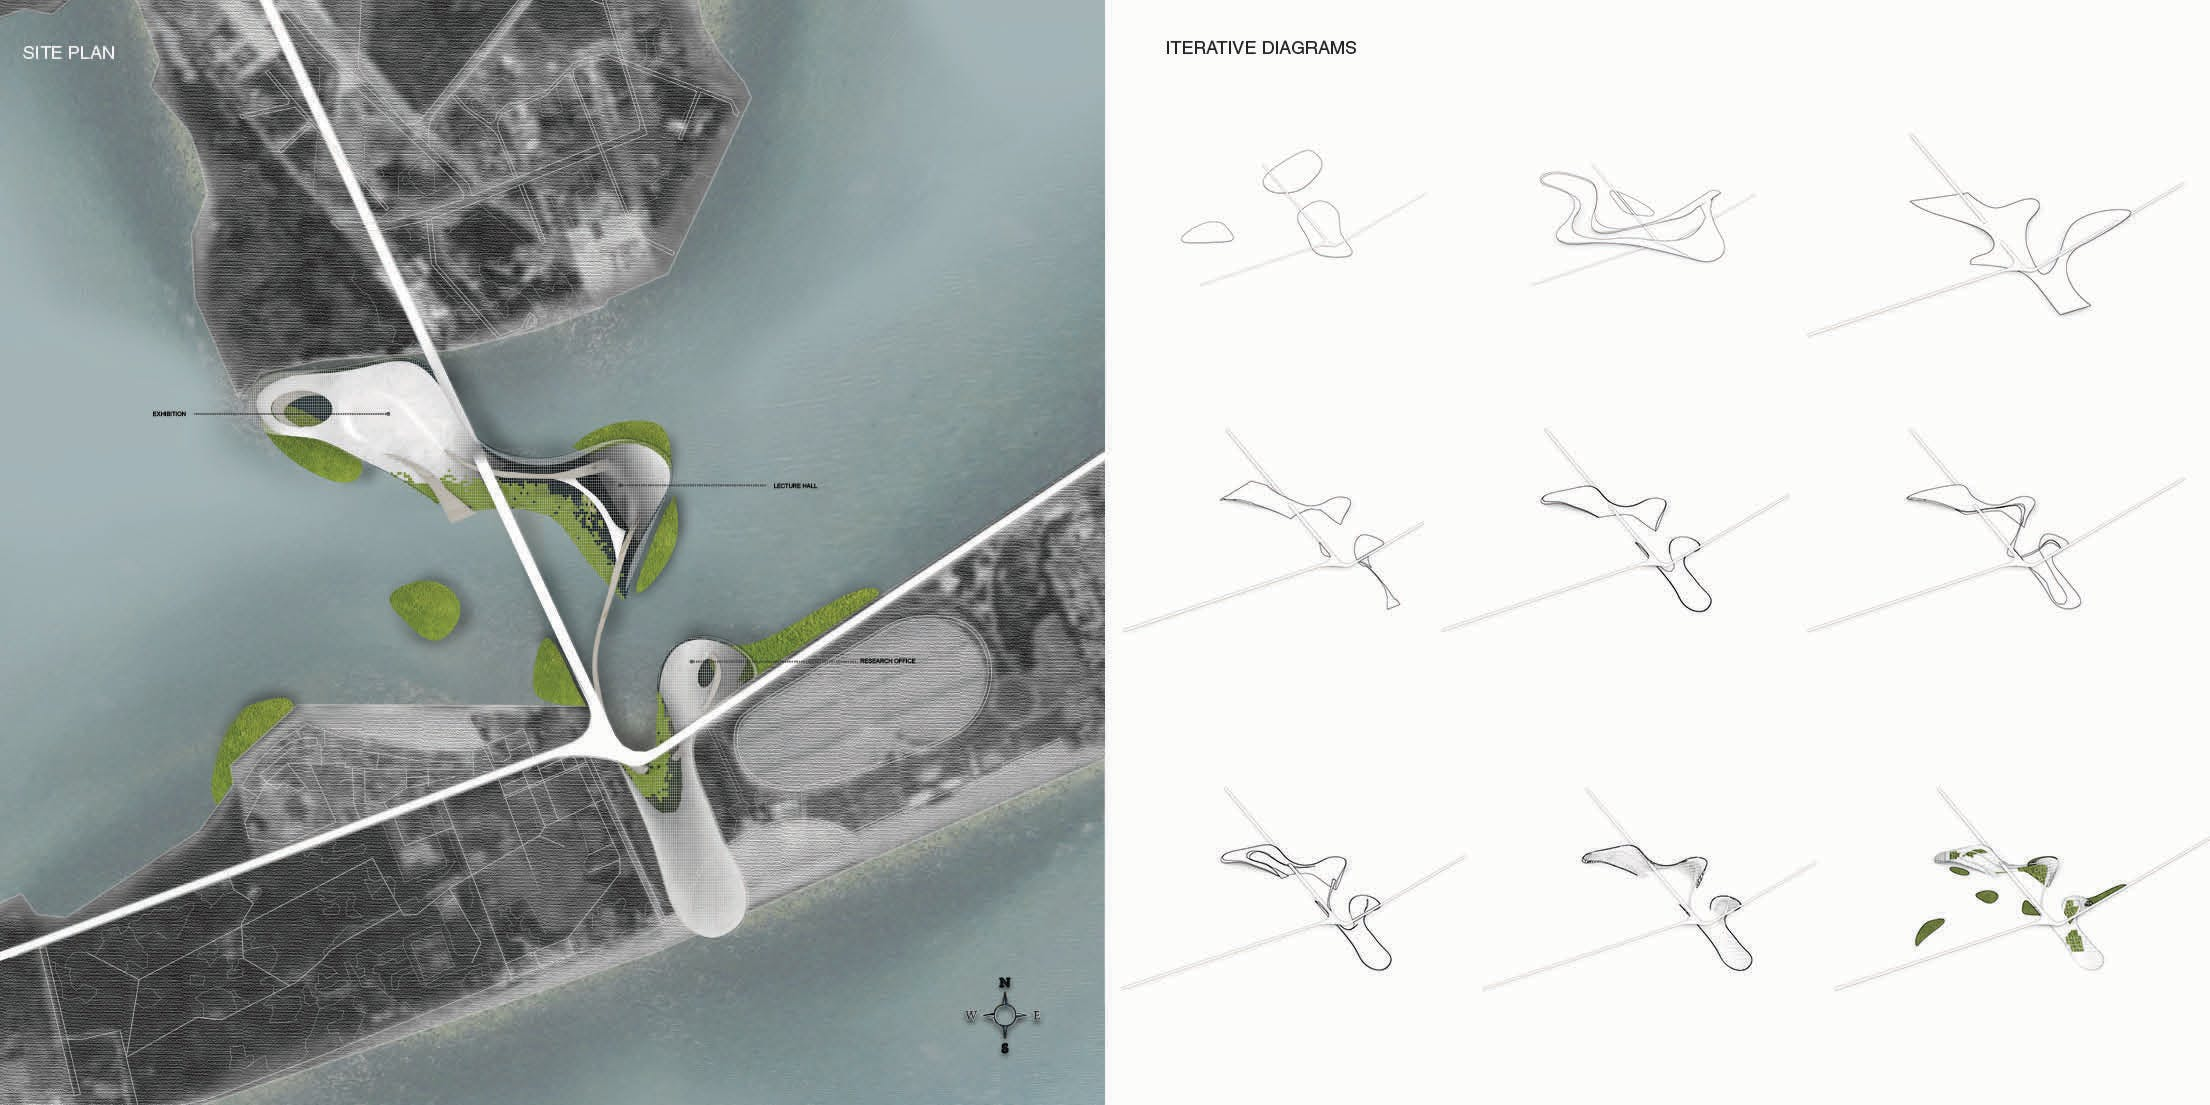 Sea Level Rise Peng Song Archinect - My location sea level